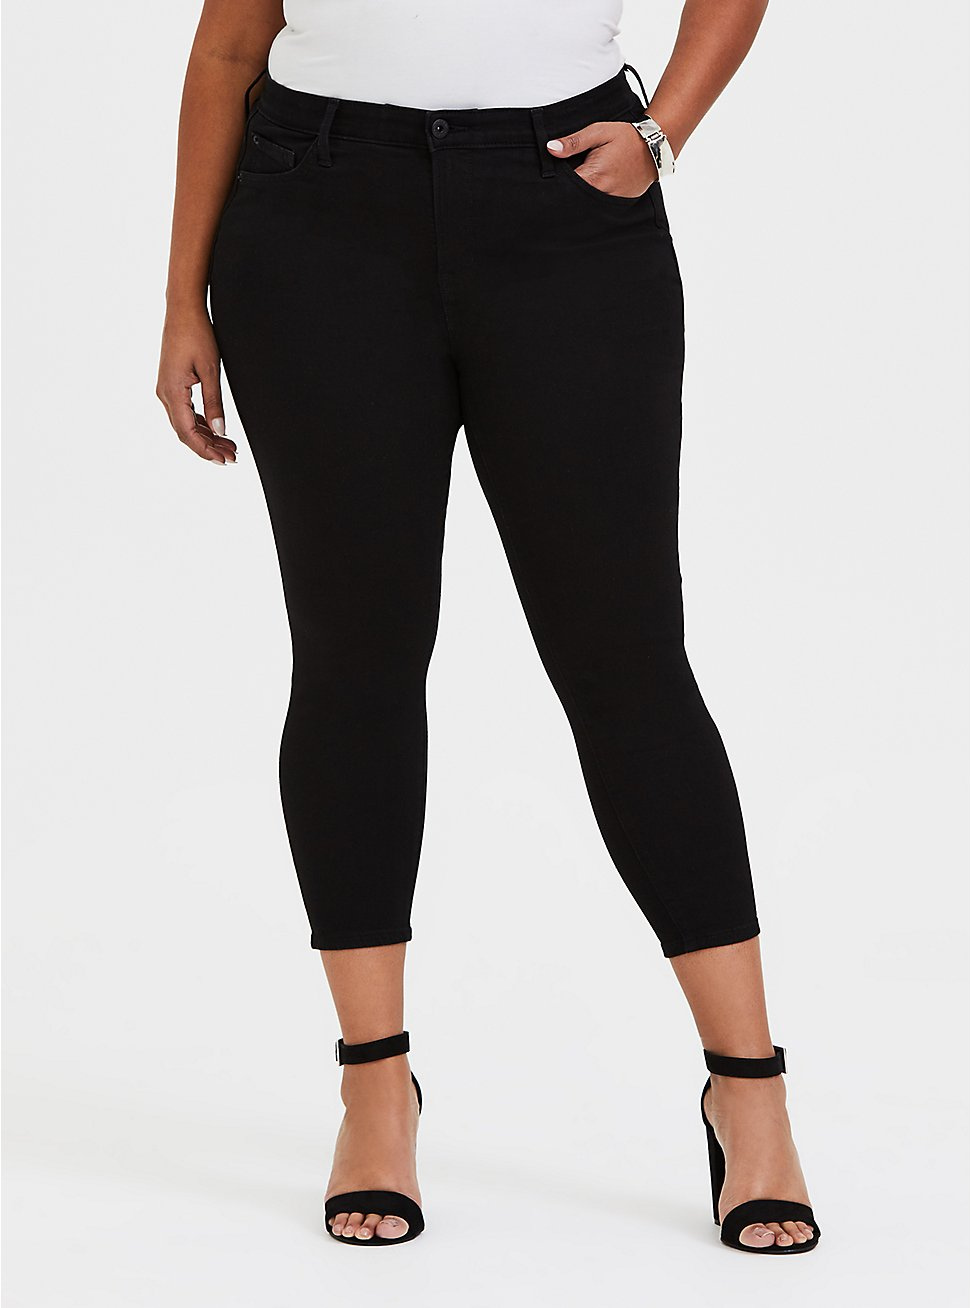 Crop Sky High Skinny Jean - Premium Stretch Black, BLACK, hi-res